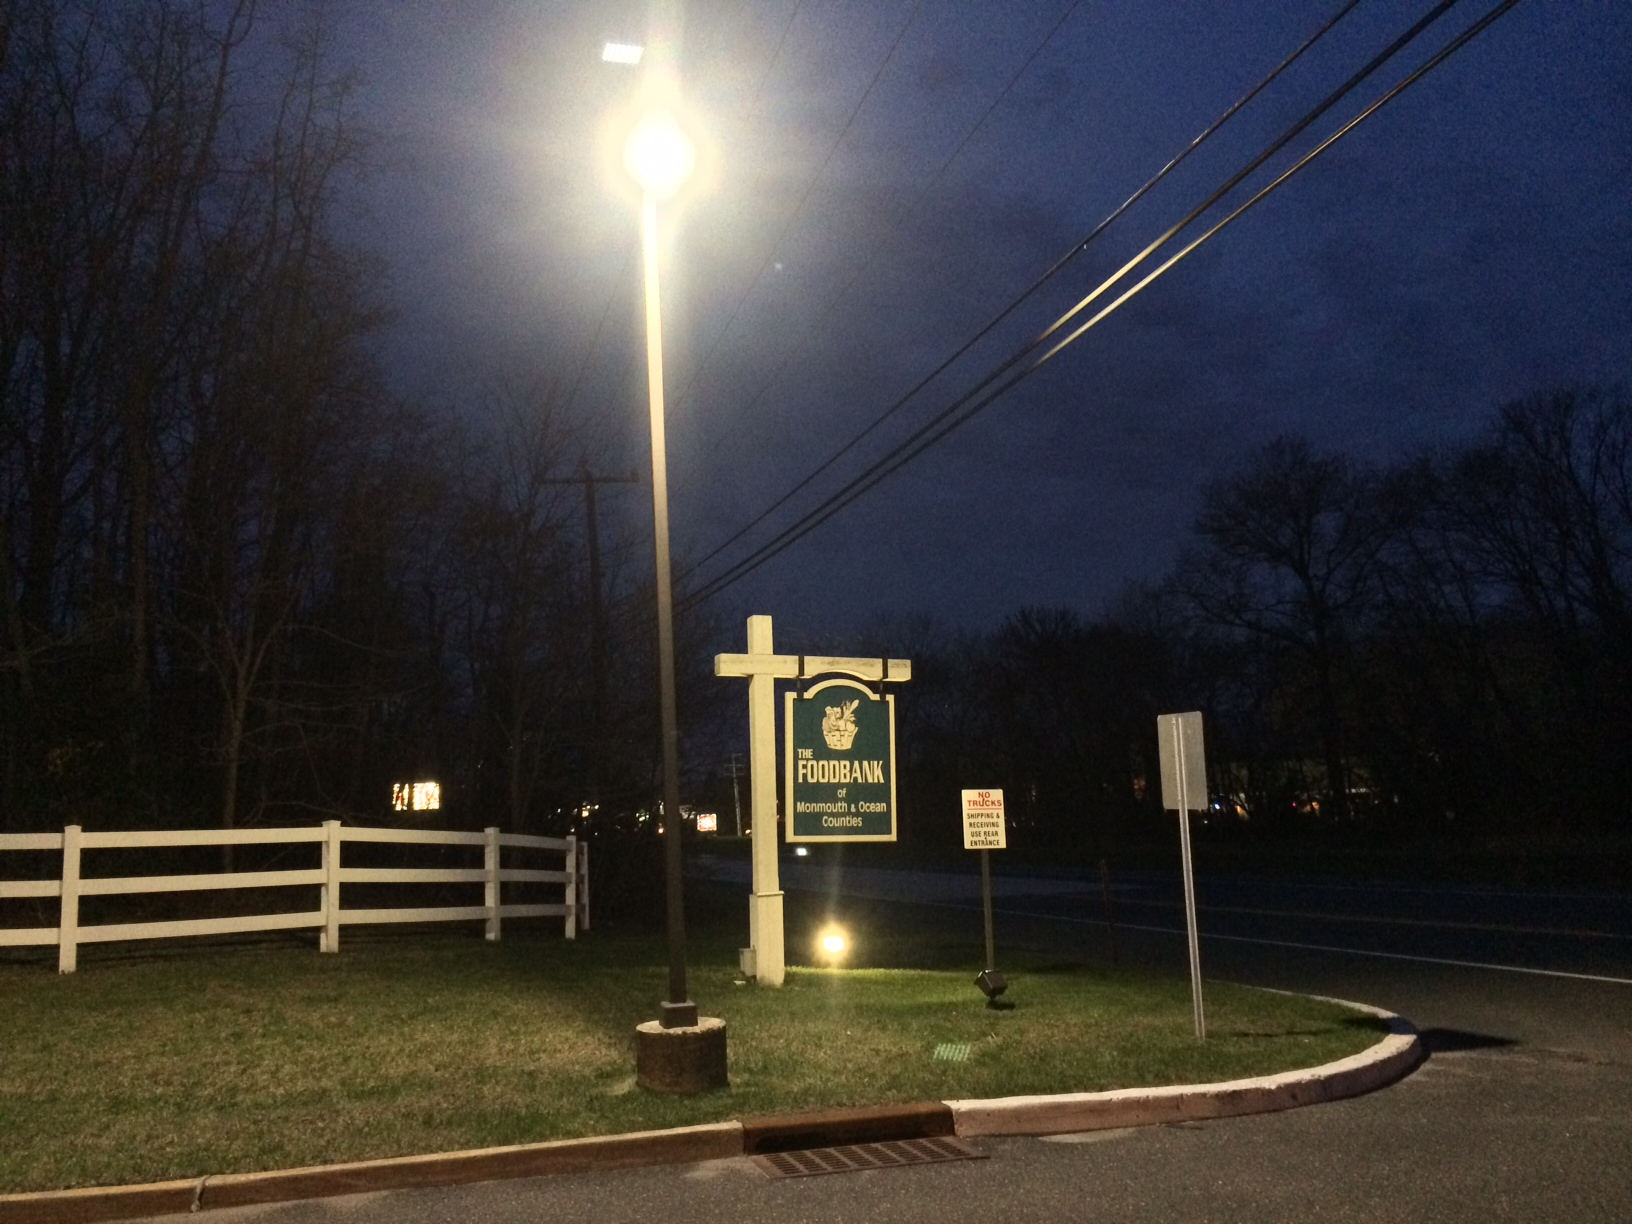 The FoodBank of Monmouth and Ocean Counties (roadside)